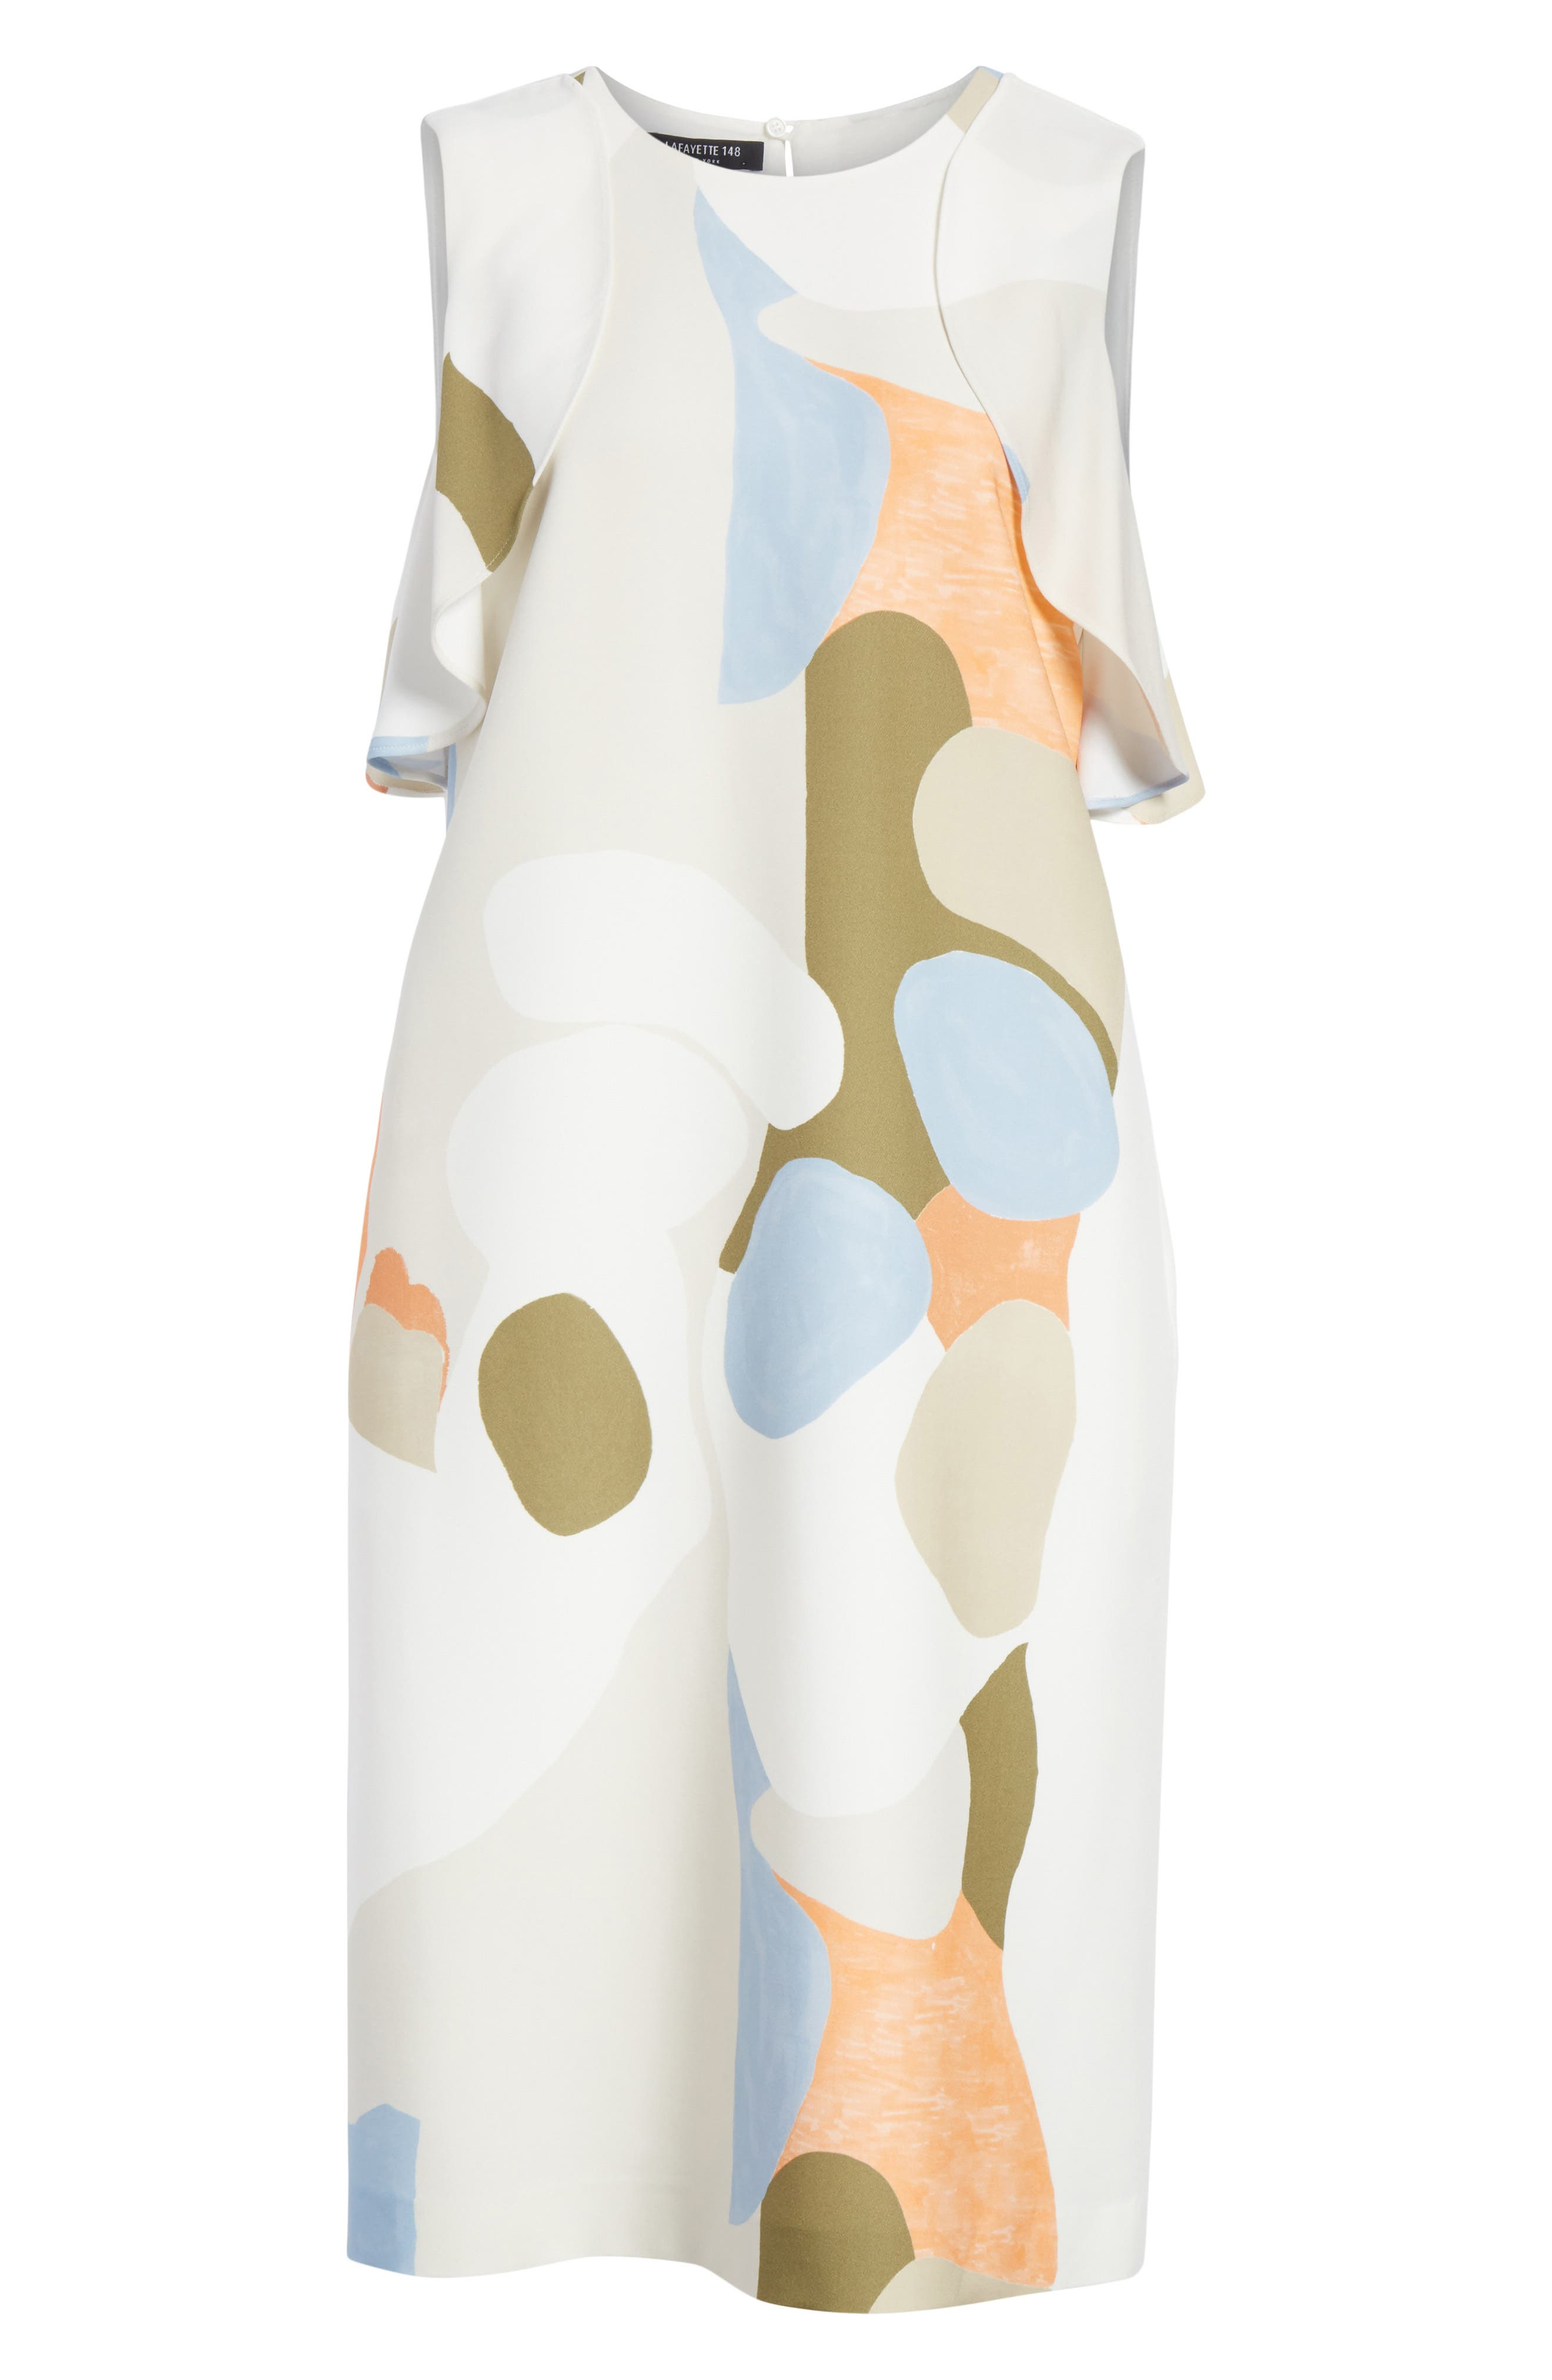 LAFAYETTE 148 NEW YORK,                             Landscape Expression Print Ruffle Dress,                             Alternate thumbnail 6, color,                             909